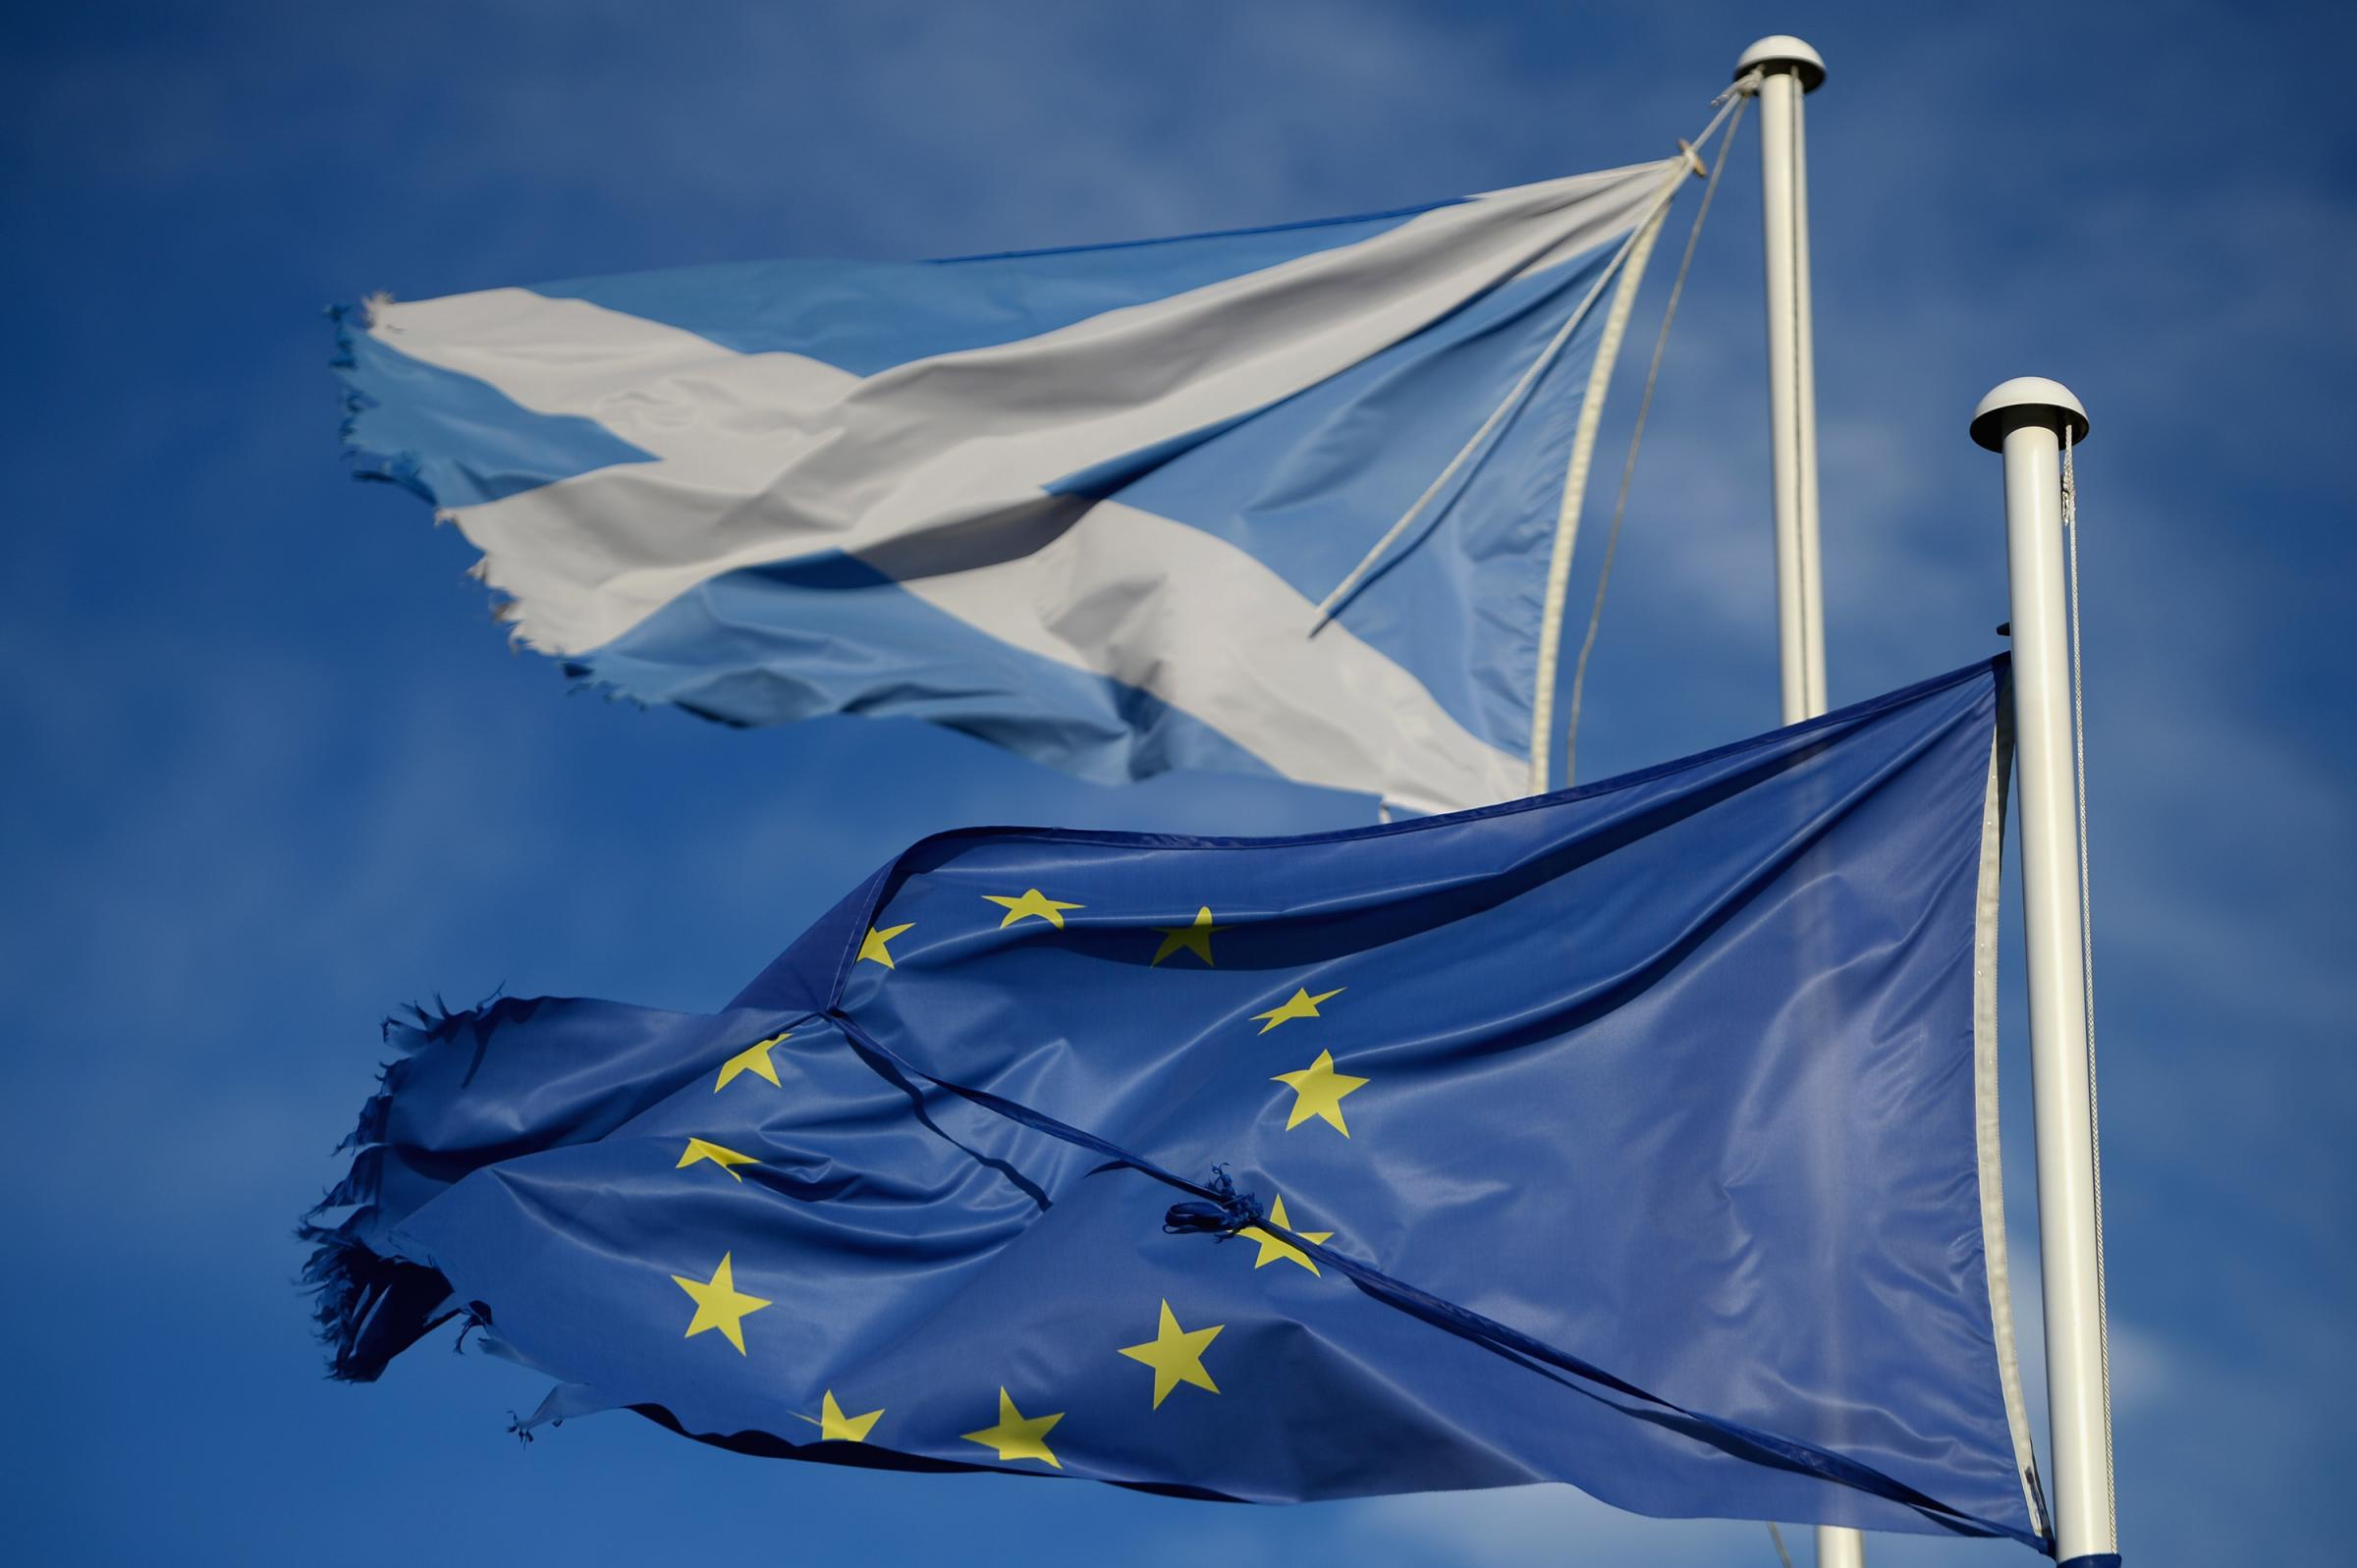 Iain Macwhirter: Scotland could rejoin the EU, but would it want to?